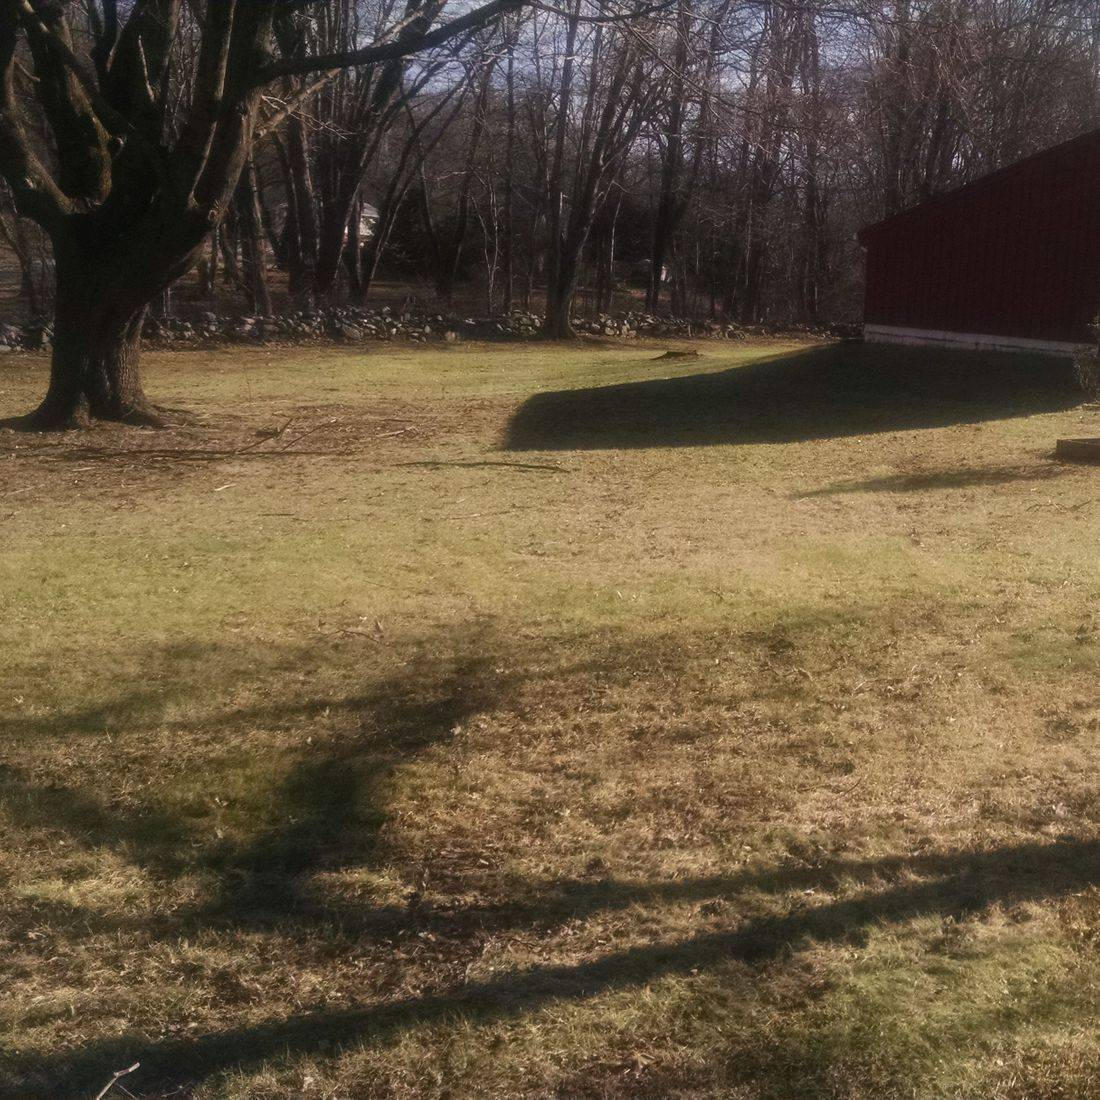 northeast Connecticut, lawncare, mowing, trimming, lawn maintenance, Labbes Lawncare Plus, weed whacking, edging